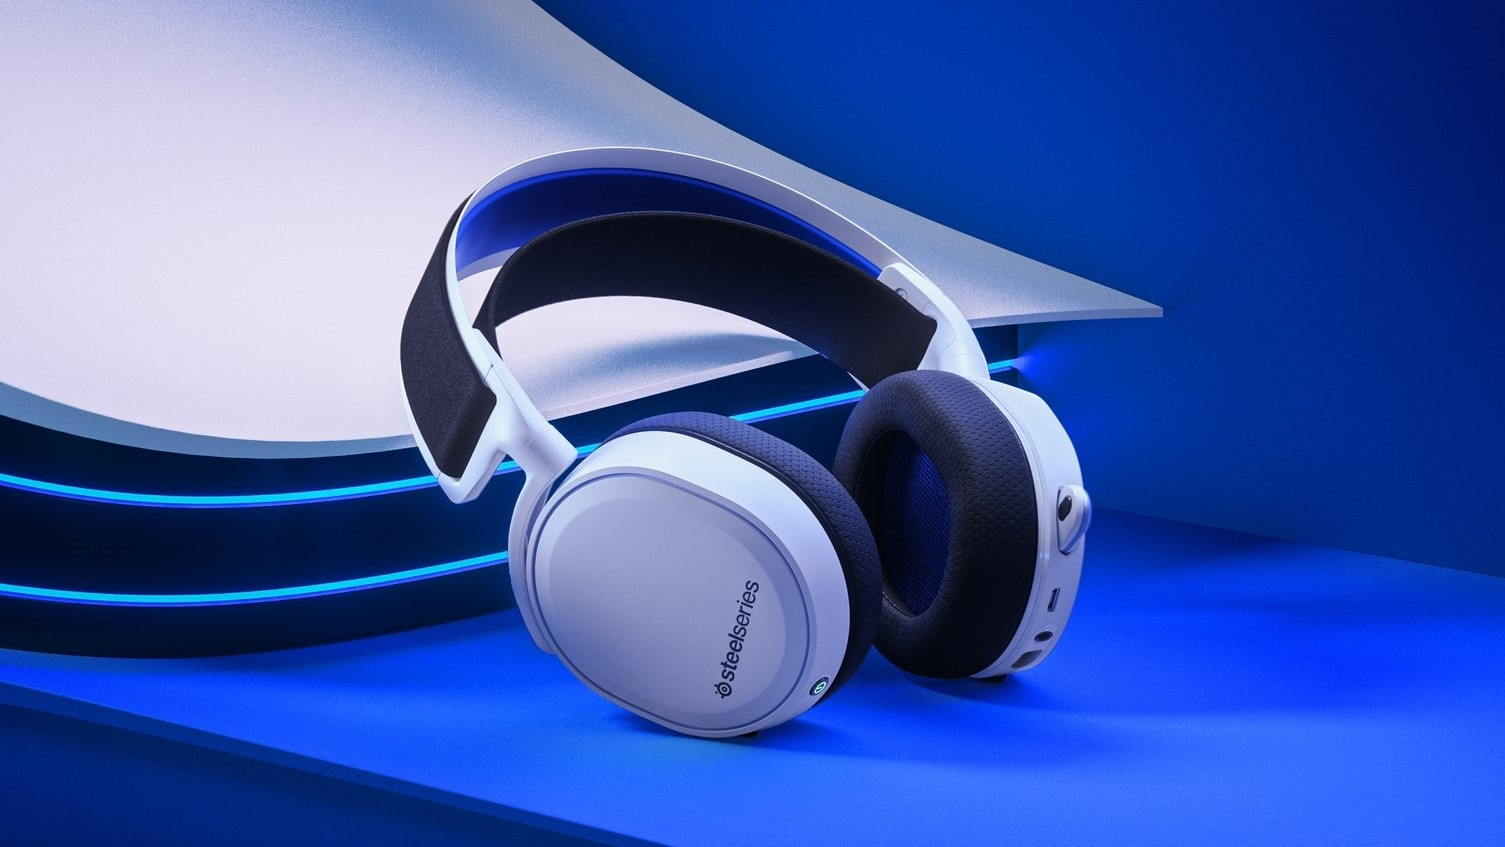 Best headsets for PS5: SteelSeries Arctis 7P